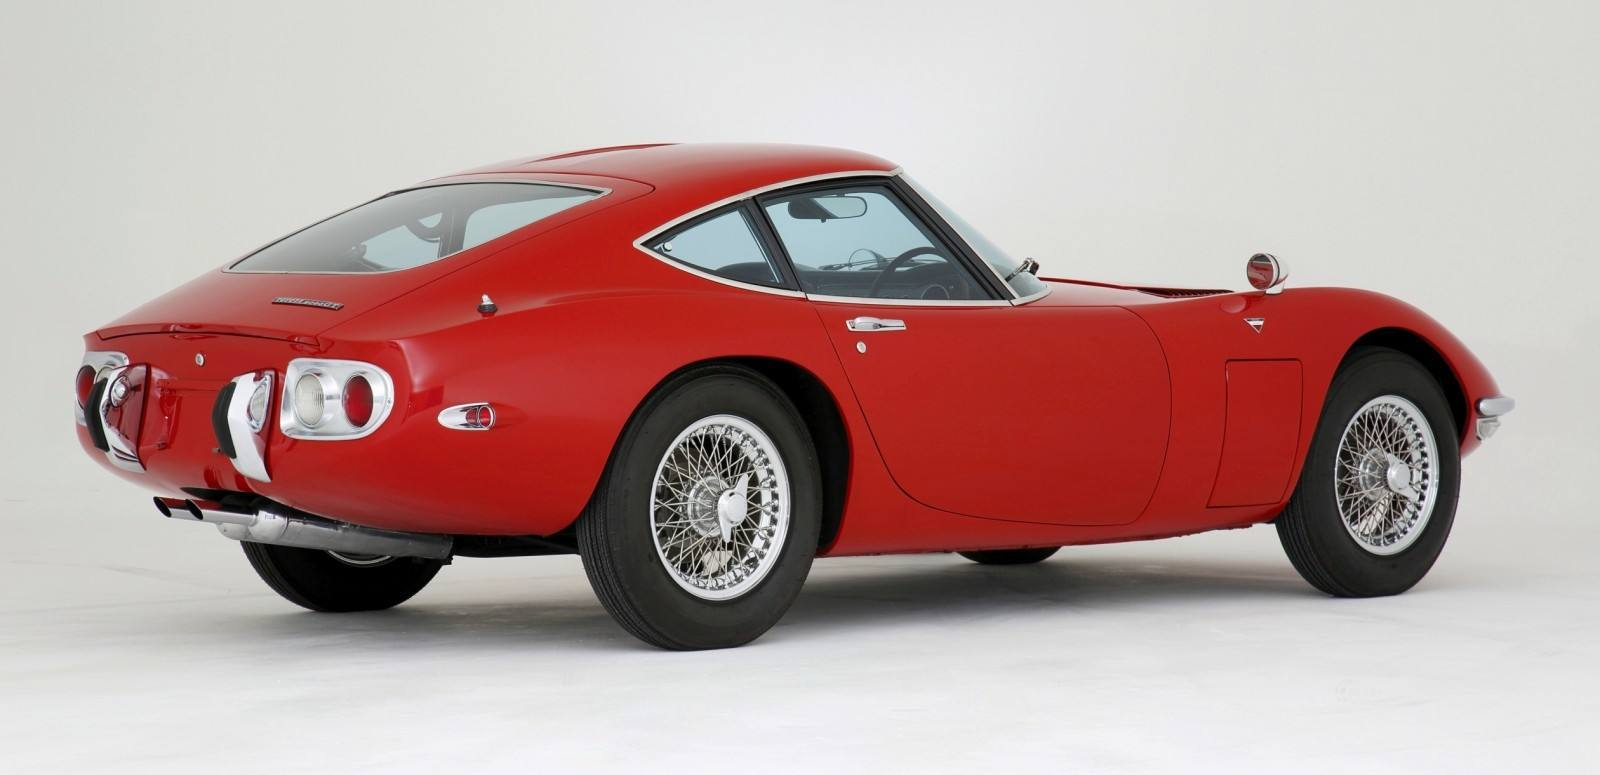 RM Auctions Monaco 2014 Highlights - 1968 Toyota 2000GT Joins Rare Million-Plus Japanese Car Club  1